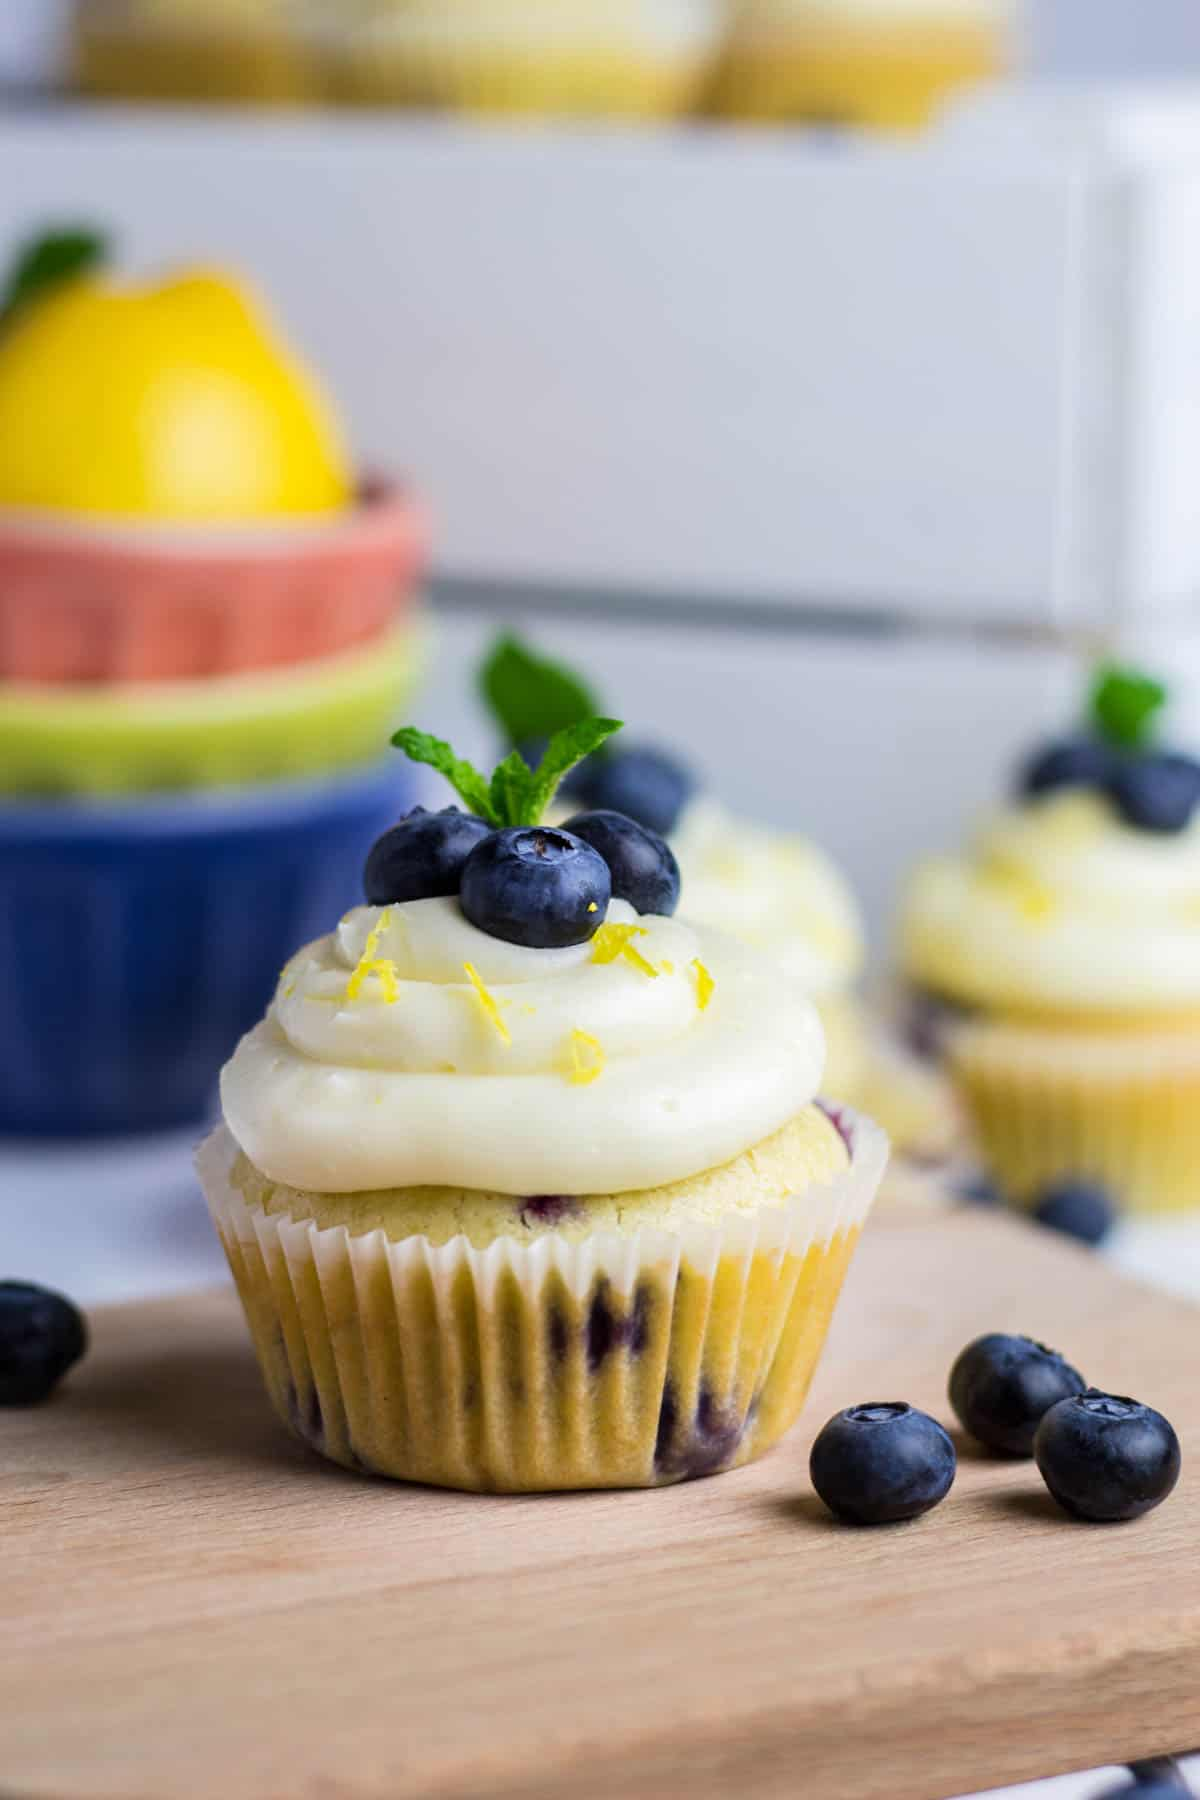 Blueberry Lemon Cupcakes toped with Cream Cheese Frosting and fresh blueberries